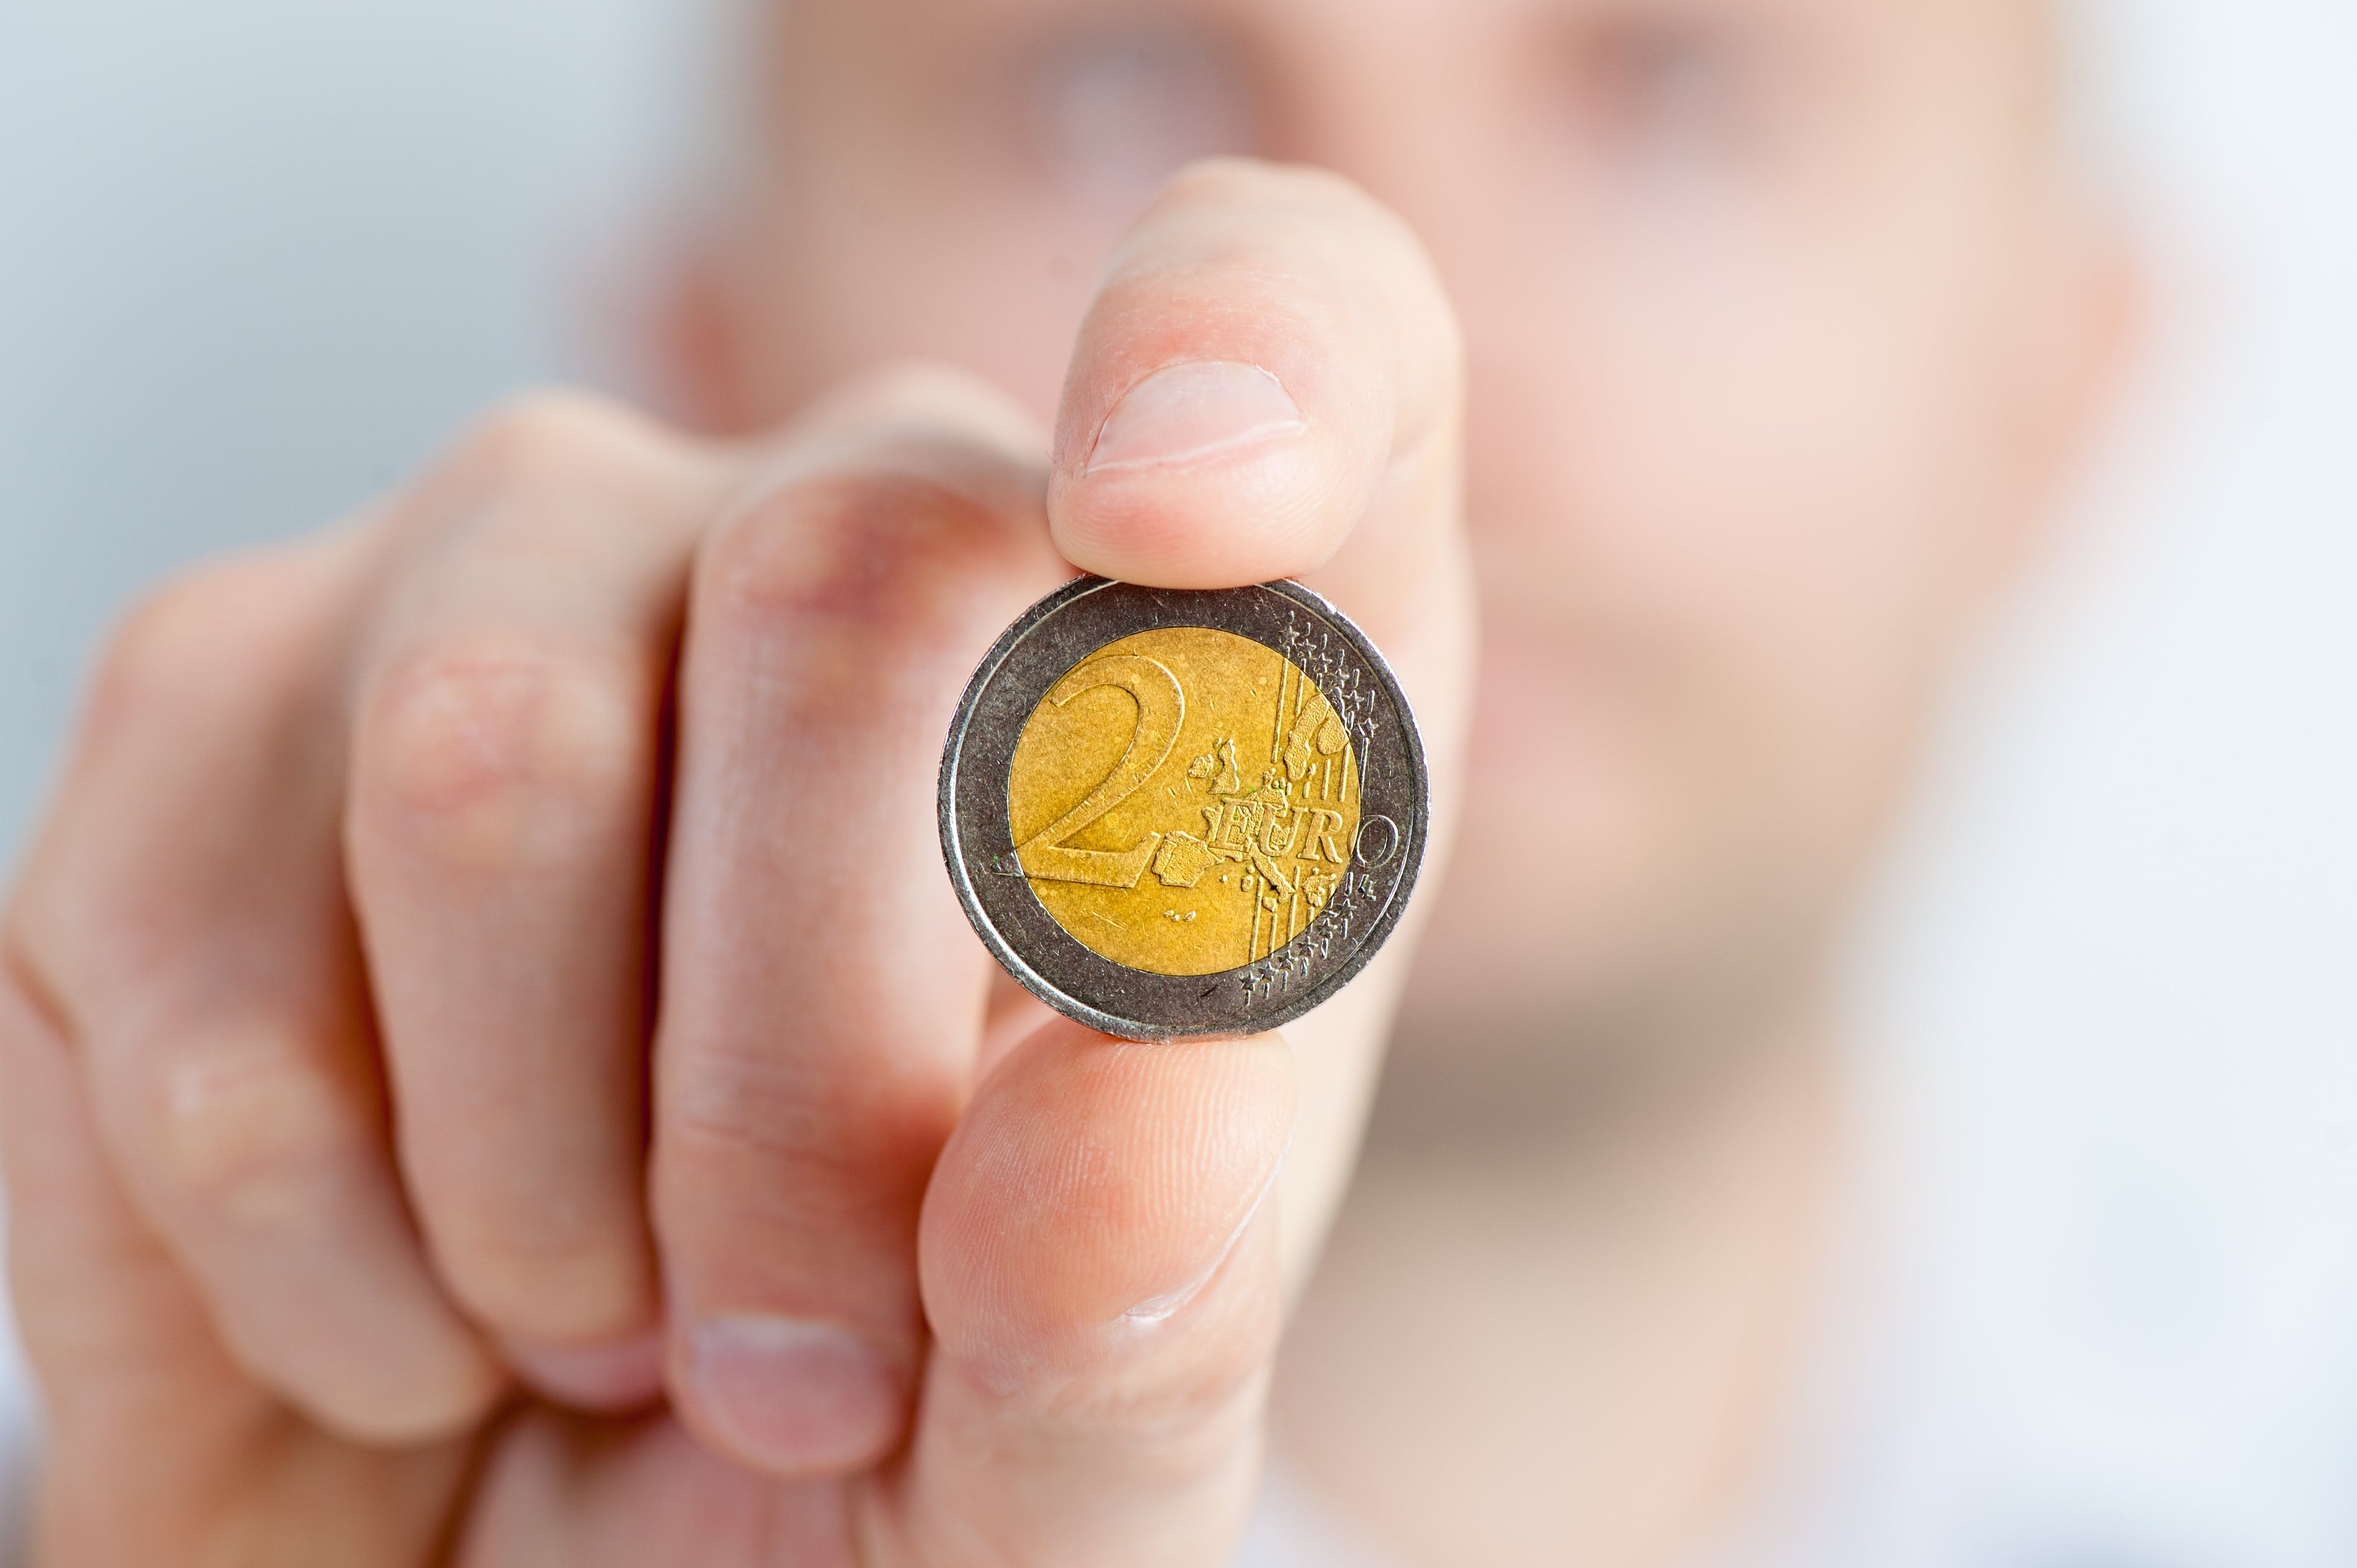 Person Holding a Gold and Silver Round Coin